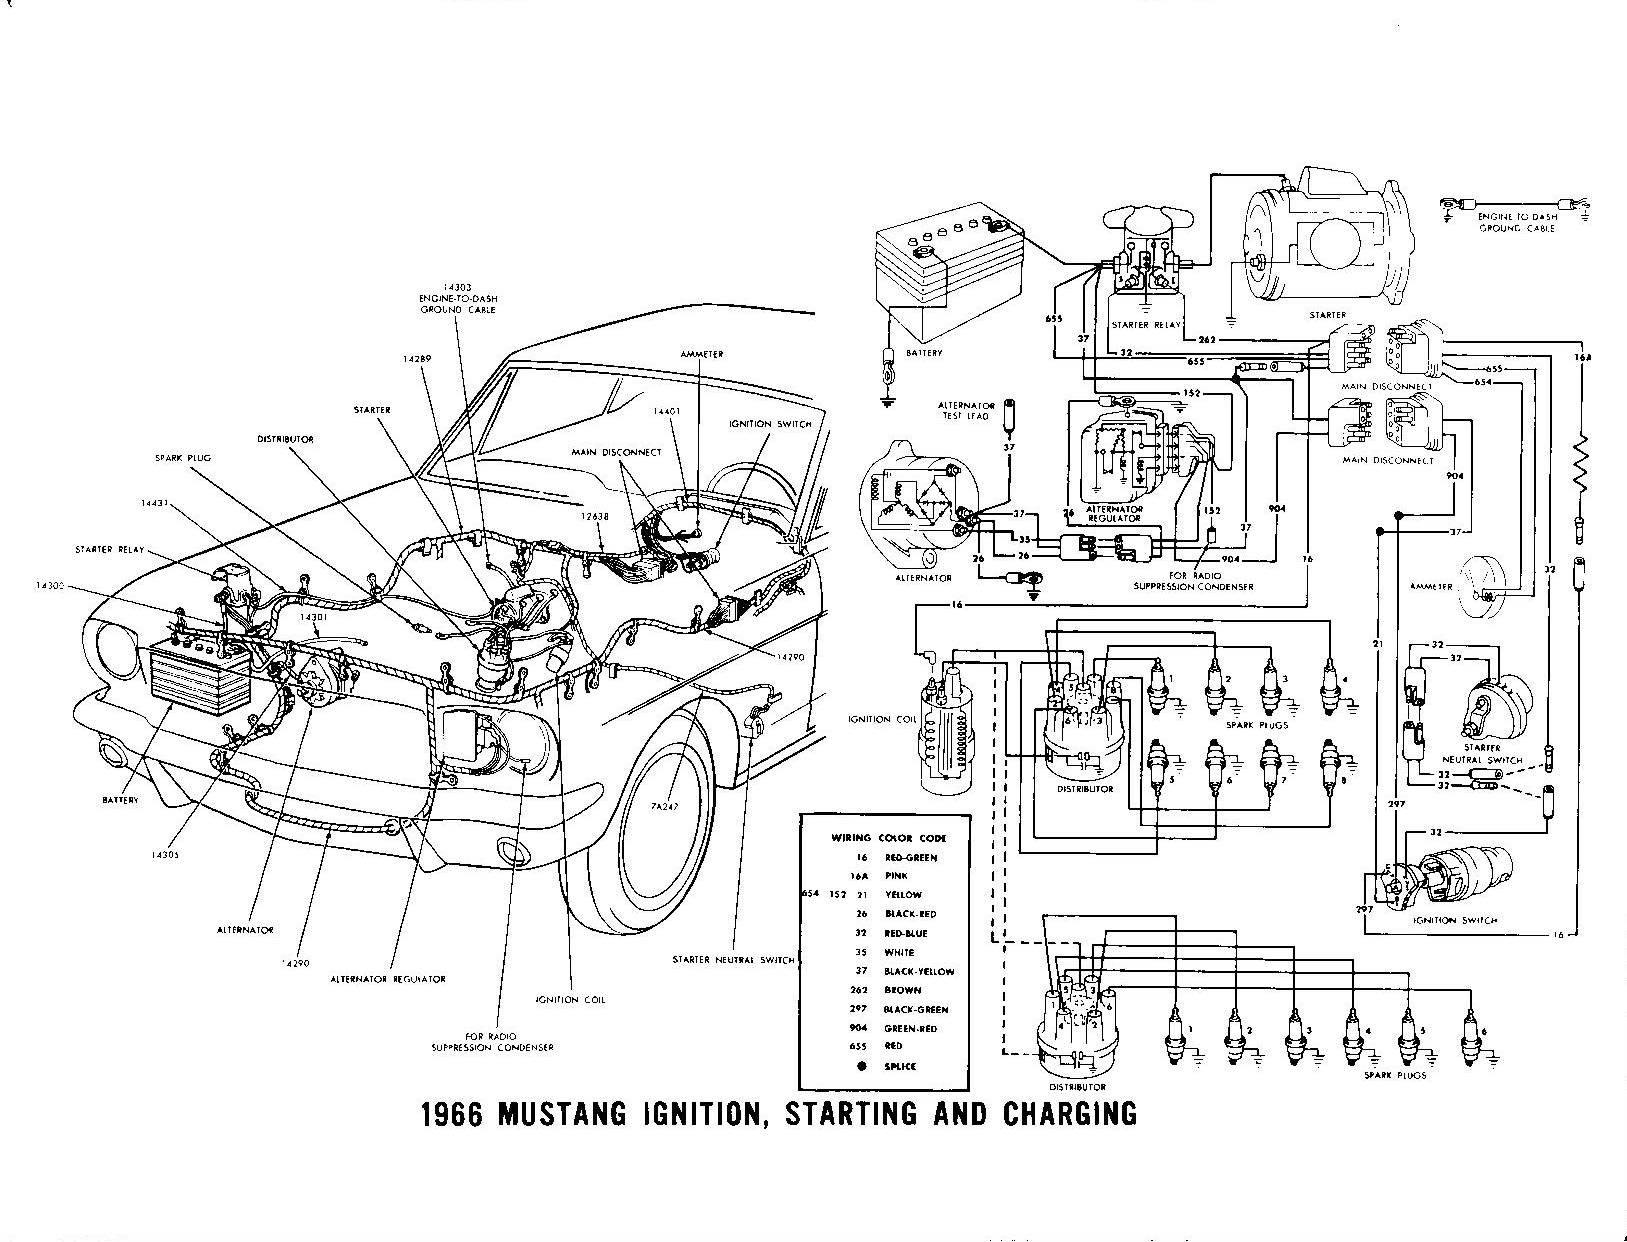 hight resolution of  85444d1260538825 voltage regulator wiring 1966 mustang ignition starting charging 66 mustang voltage regulator wiring diagram 66